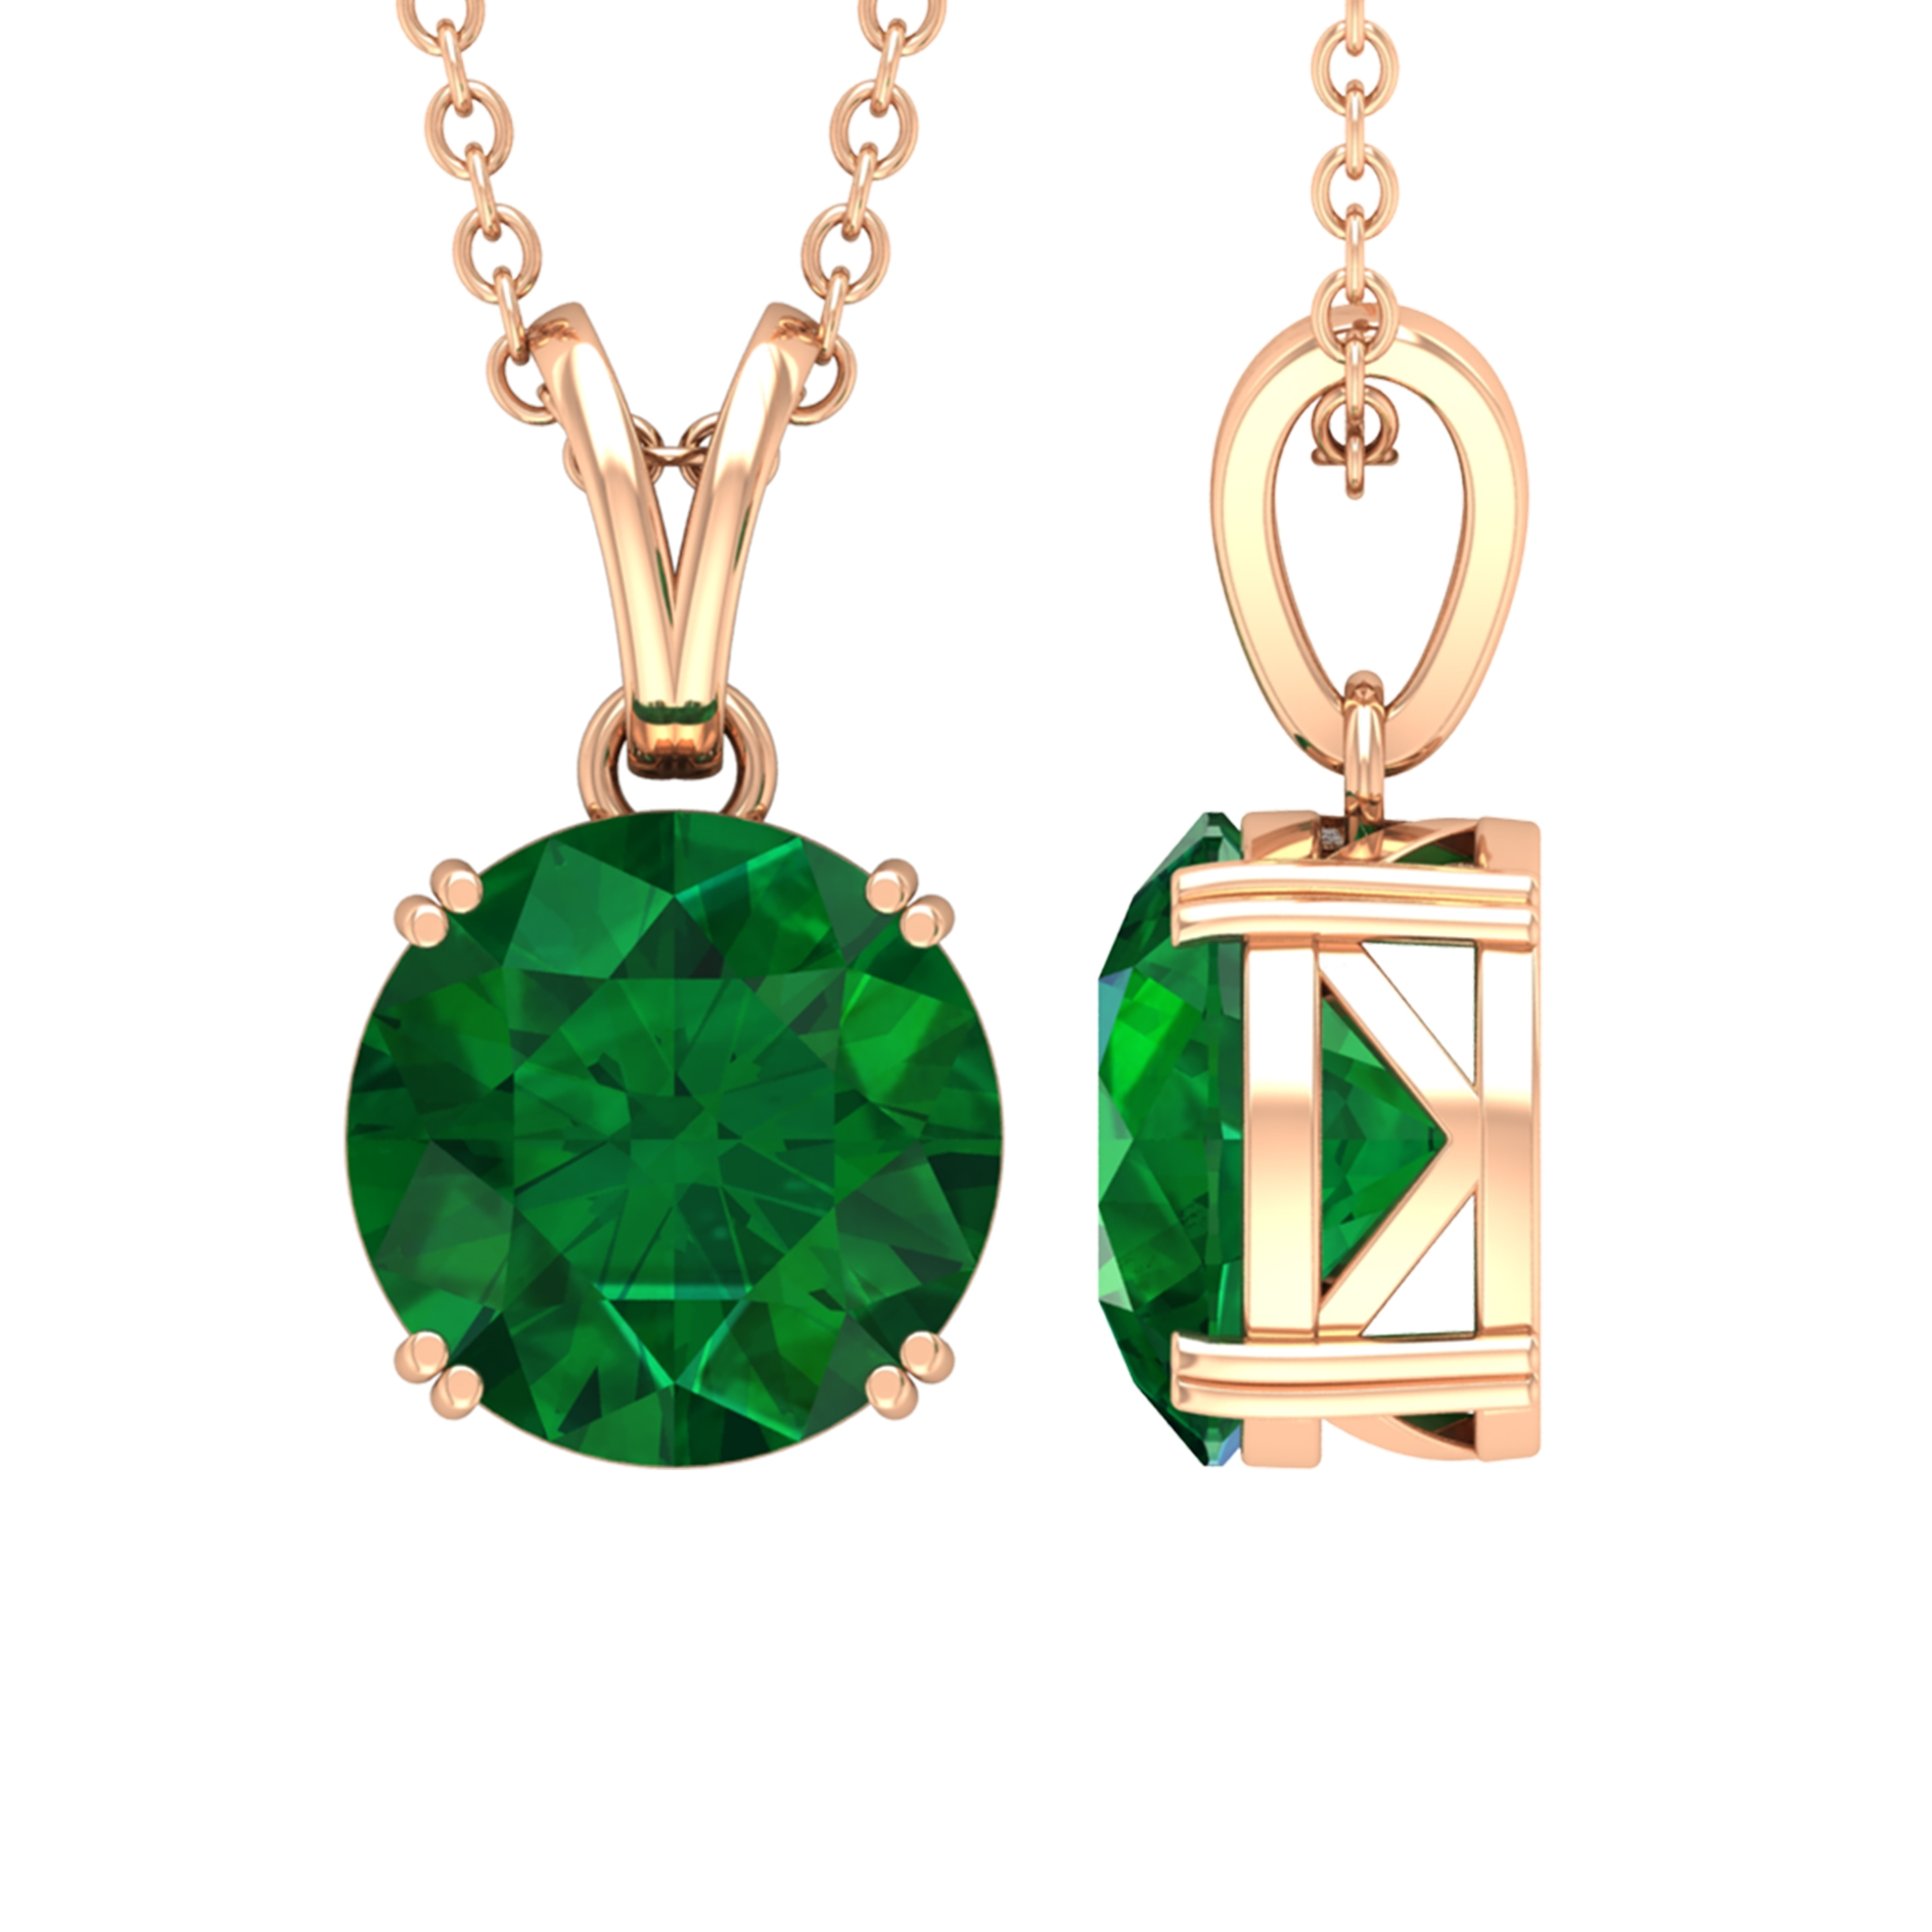 8 MM Round Cut Solitaire Emerald Pendant in Double Prong Set with Rabbit Ear Bale